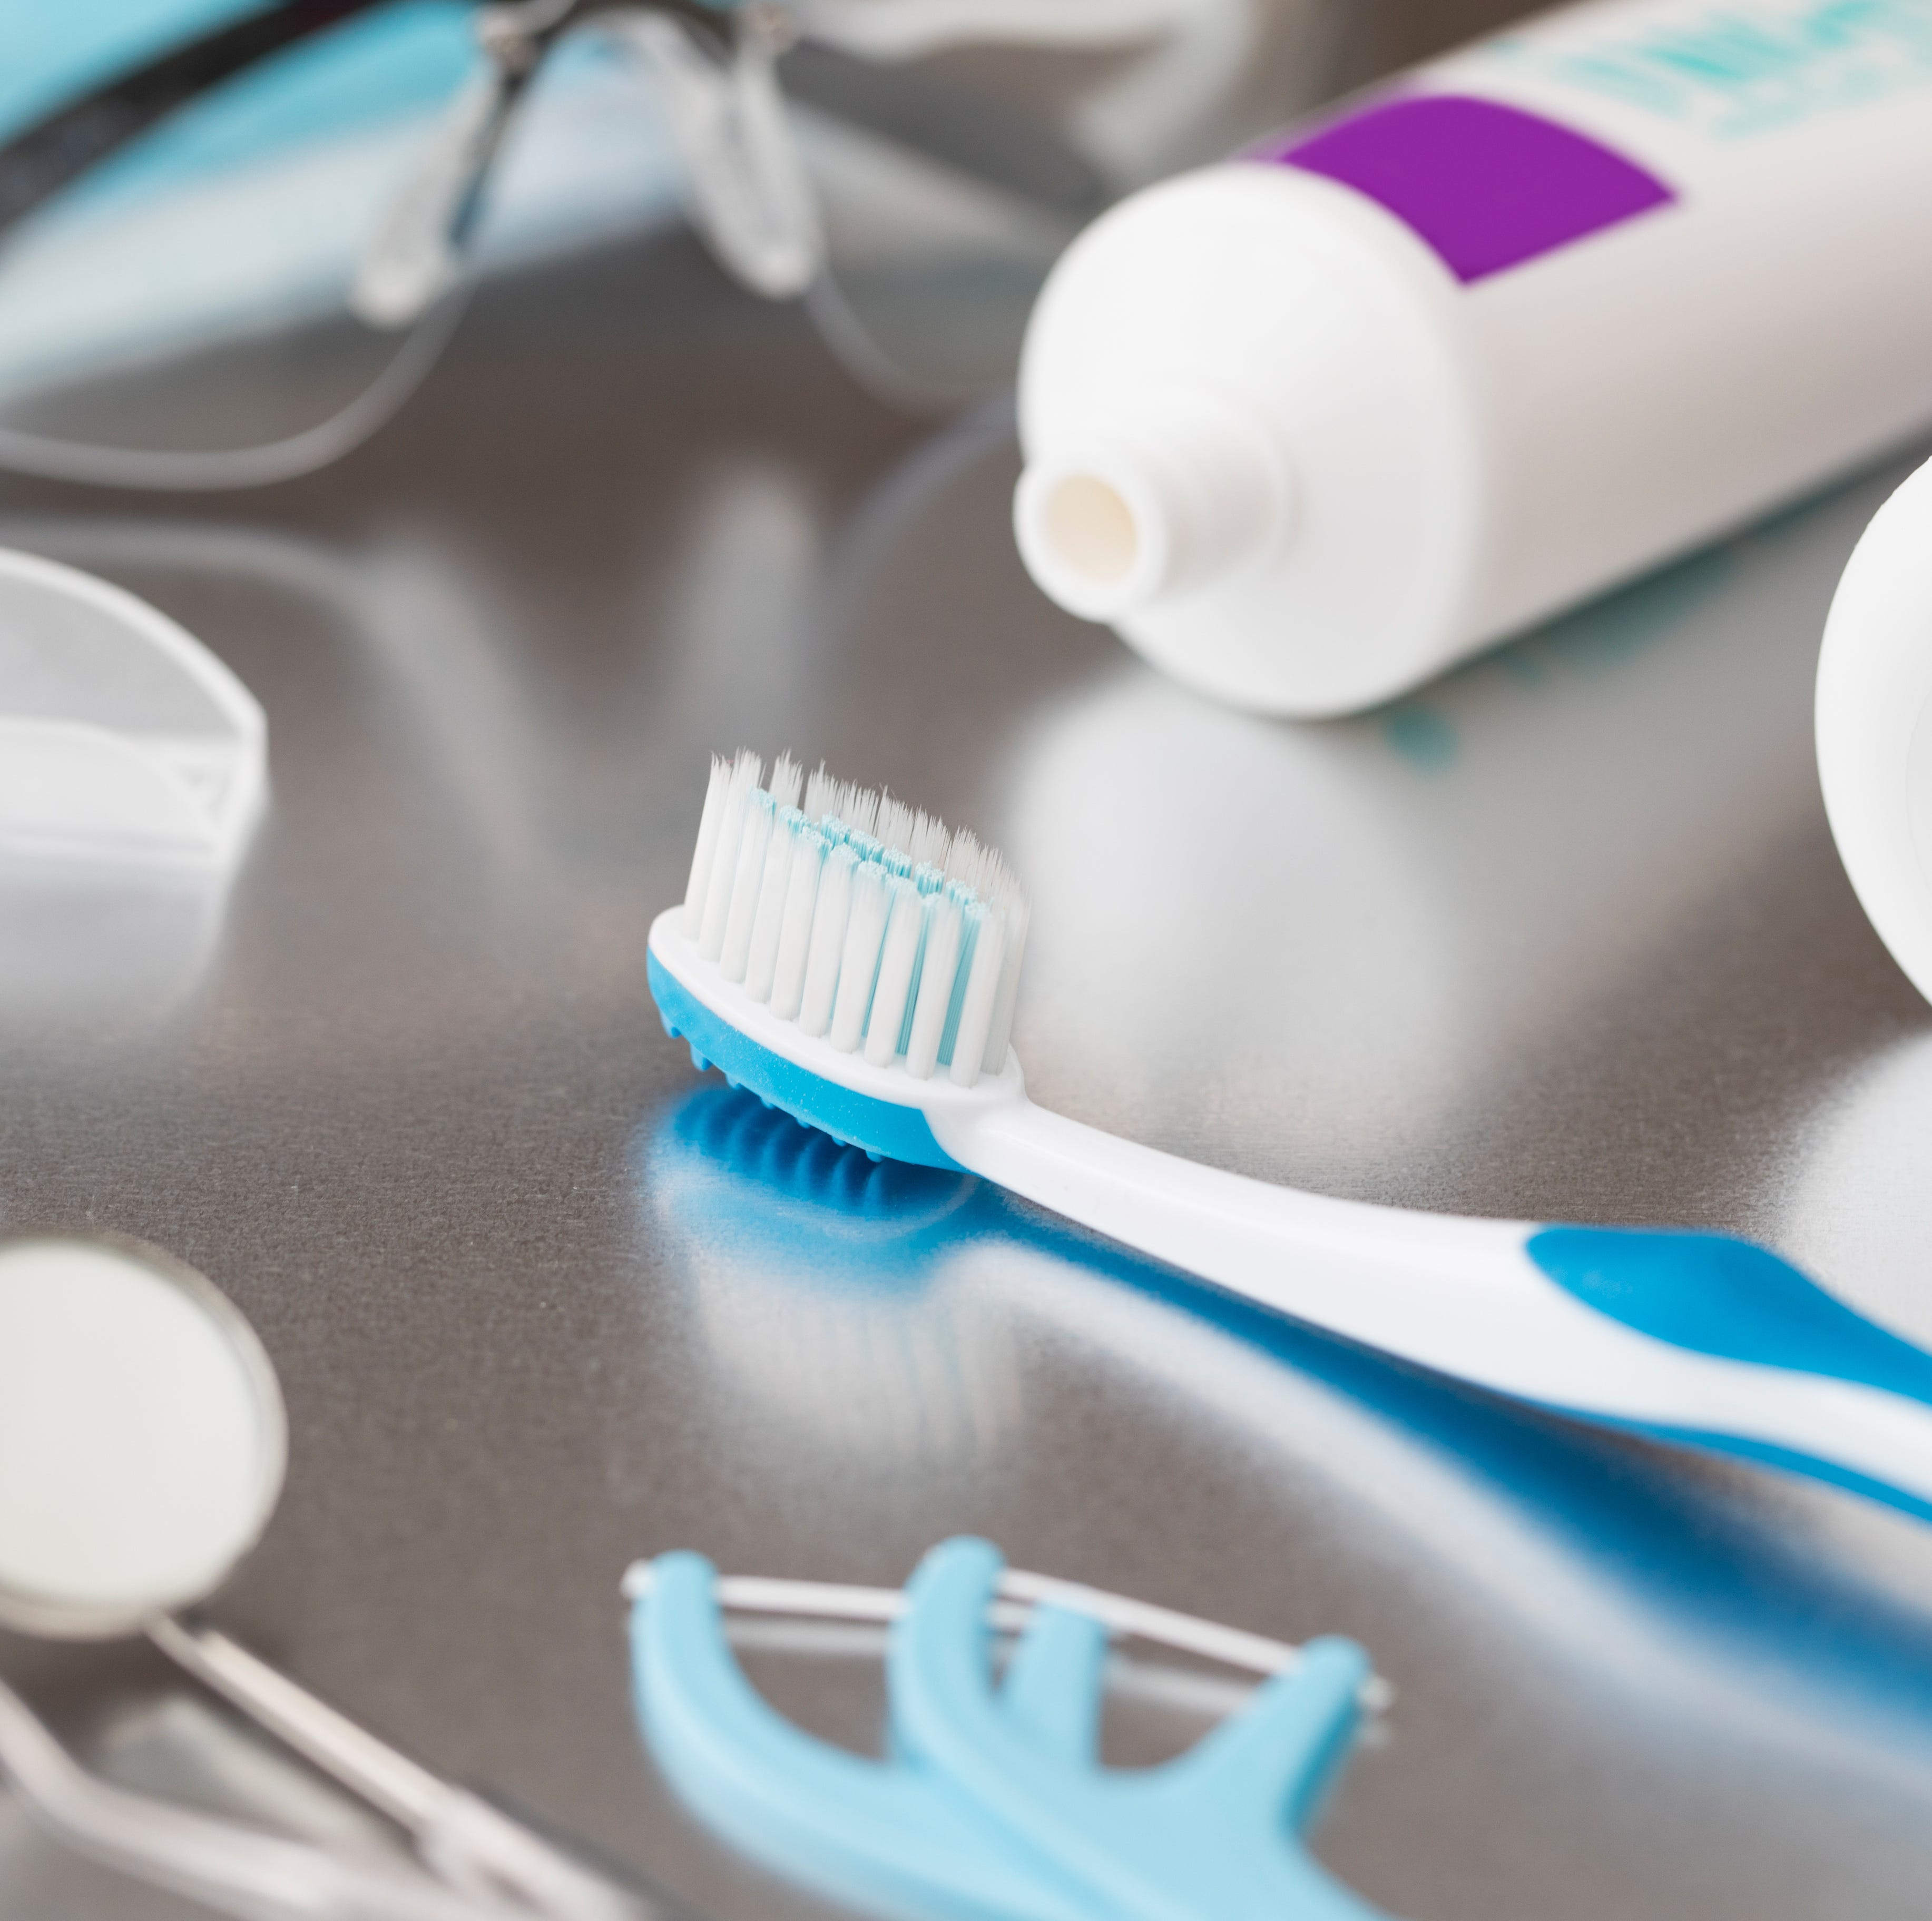 Child friendly dental service opens in San Angelo, accepting immediate appointments